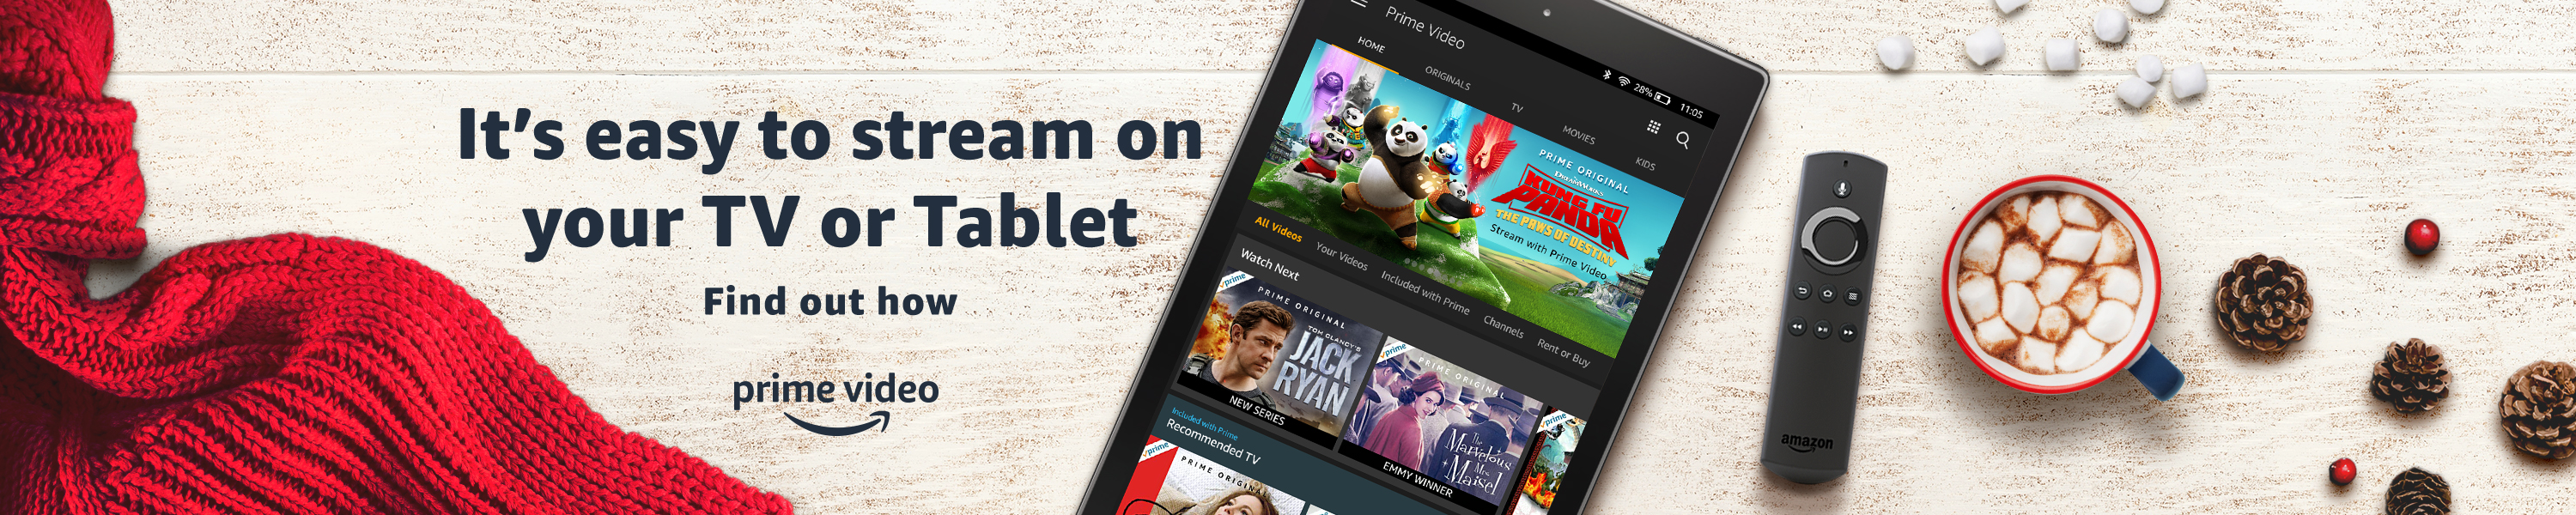 It's easy to stream on your TV or Tablet. Find out how.